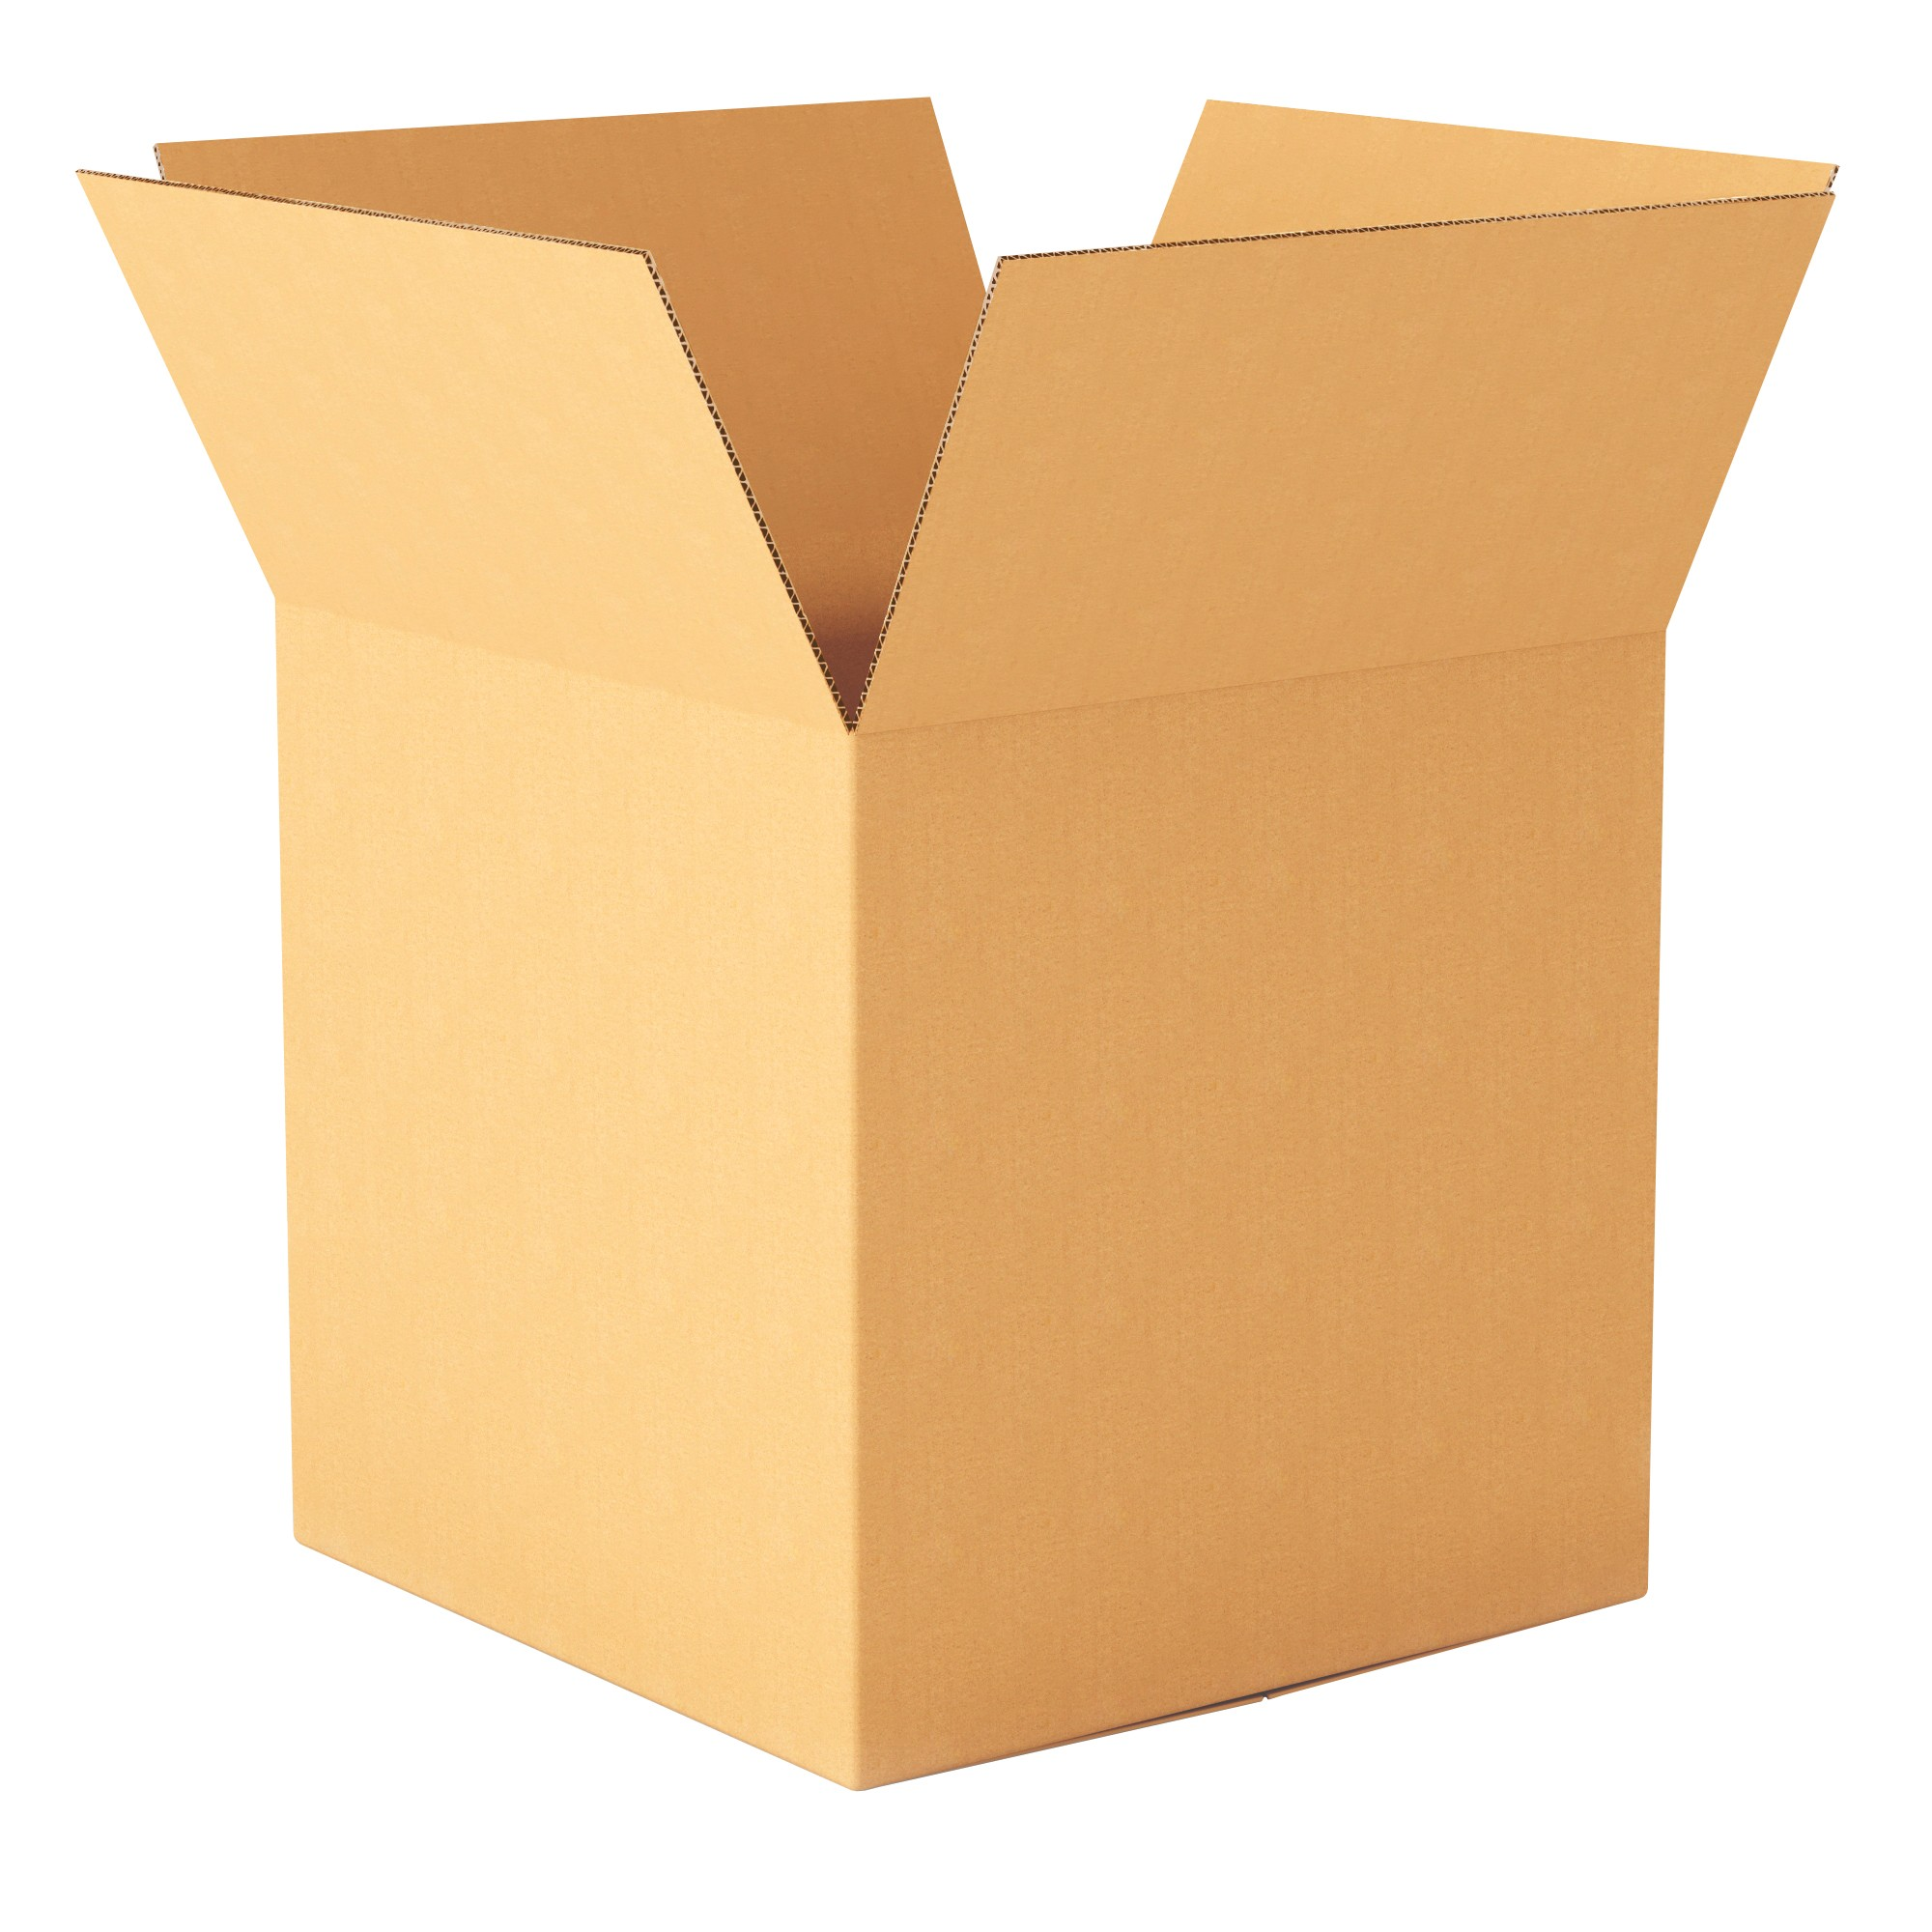 """TOTALPACK® 16 x 16 x 16"""" Single Wall Corrugated Boxes 25 Units"""